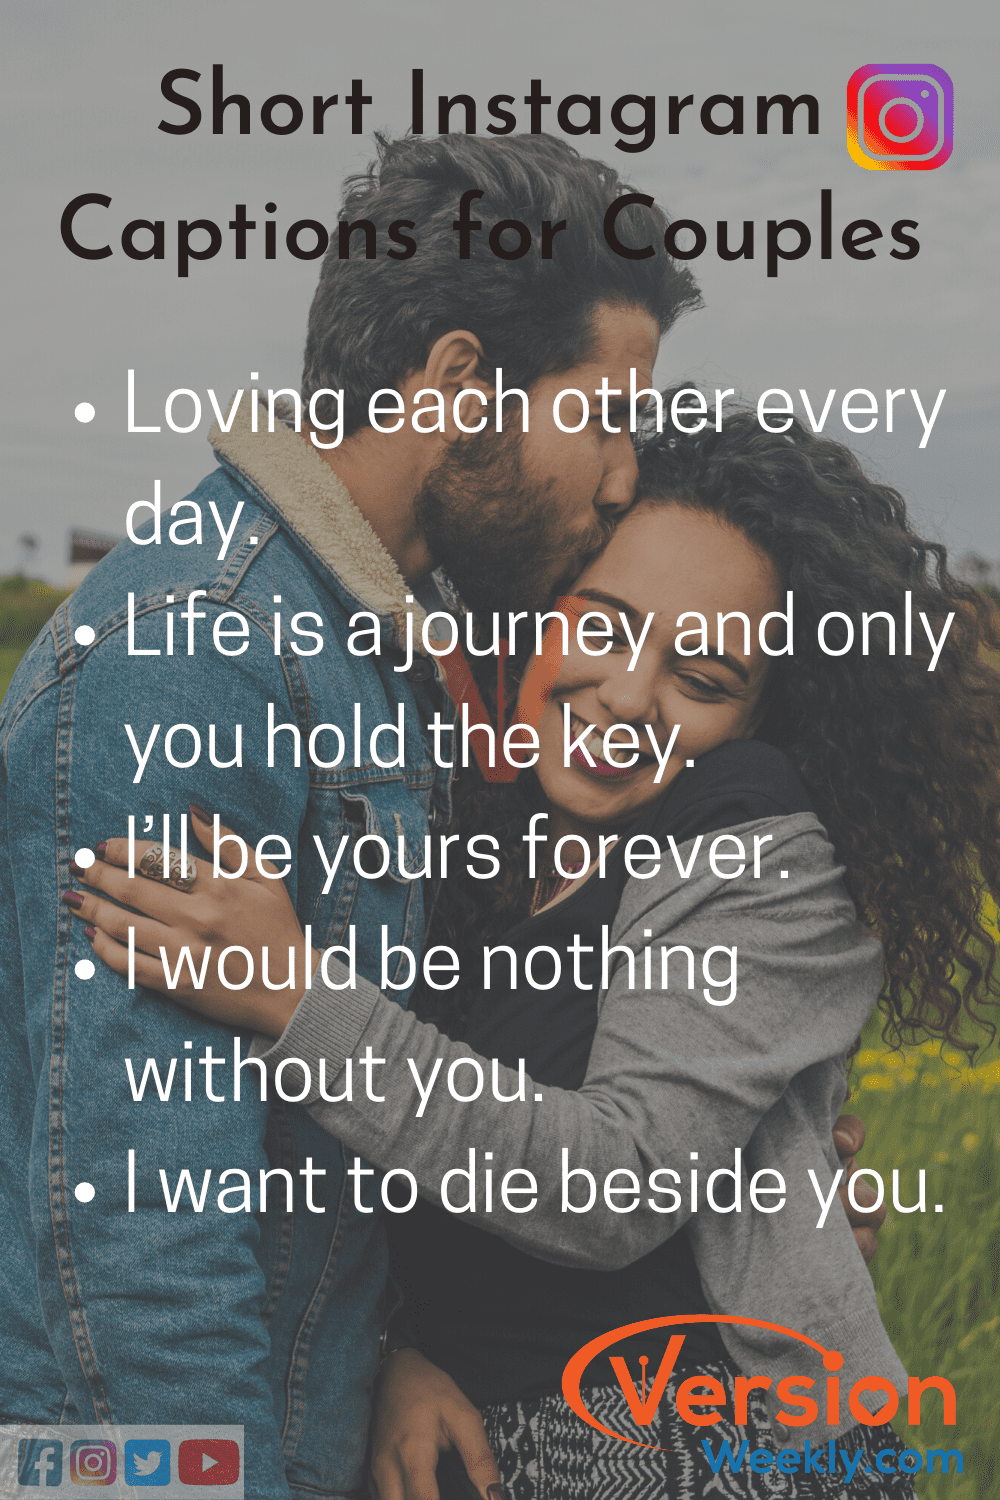 100 Best Love Captions For Instagram Cool Cute Romantic Instagram Love Quotes For Him Her Relationship Pics Version Weekly